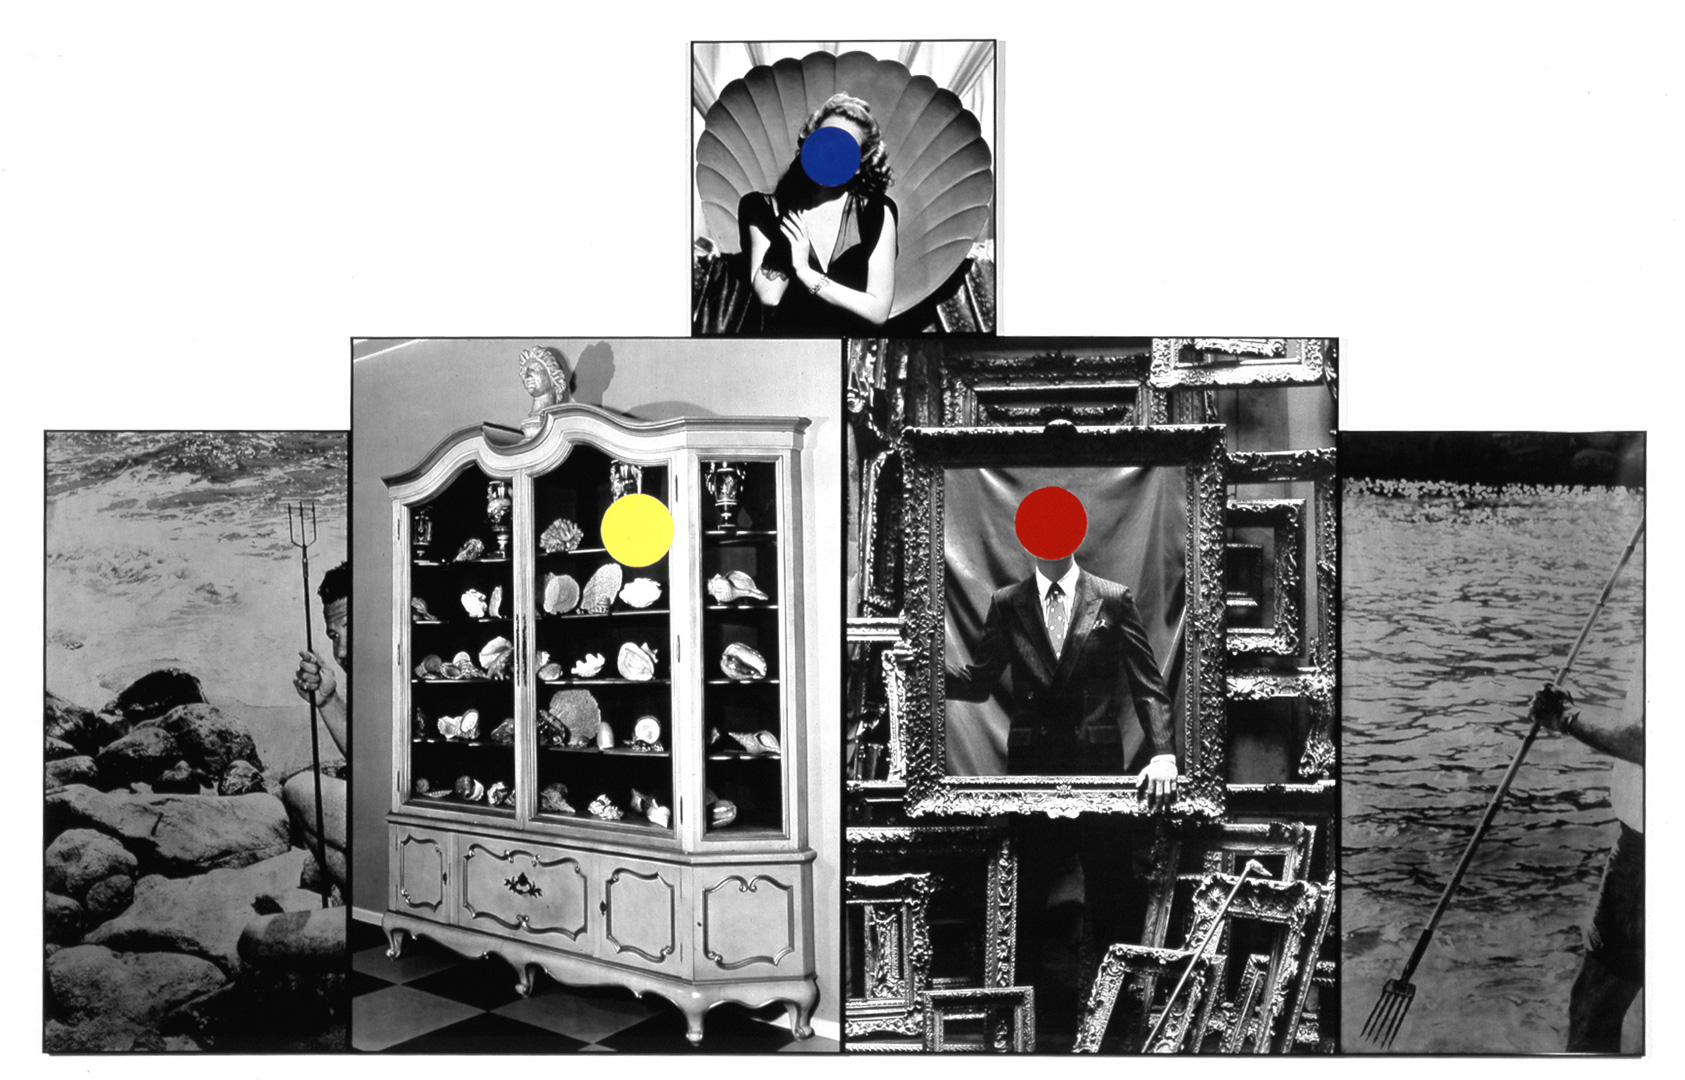 John Baldessari - Seashells/Tridents/Frames, 1988, five black and white photographs with oil tint and vinyl paint